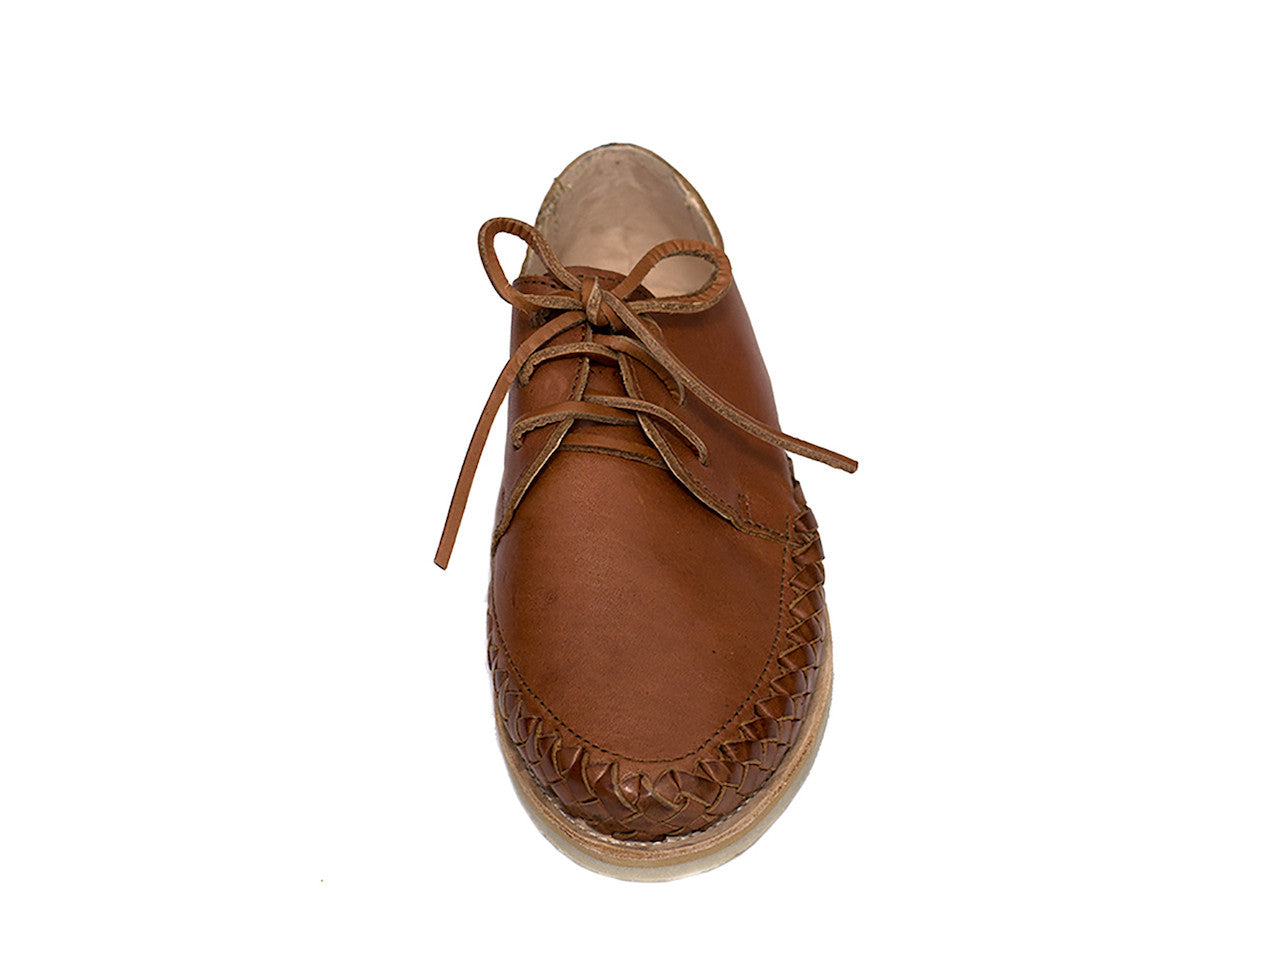 Casual Leather Shoes - Sayulita for Men and Women in Brown by Tapatía on Jetset Times SHOP